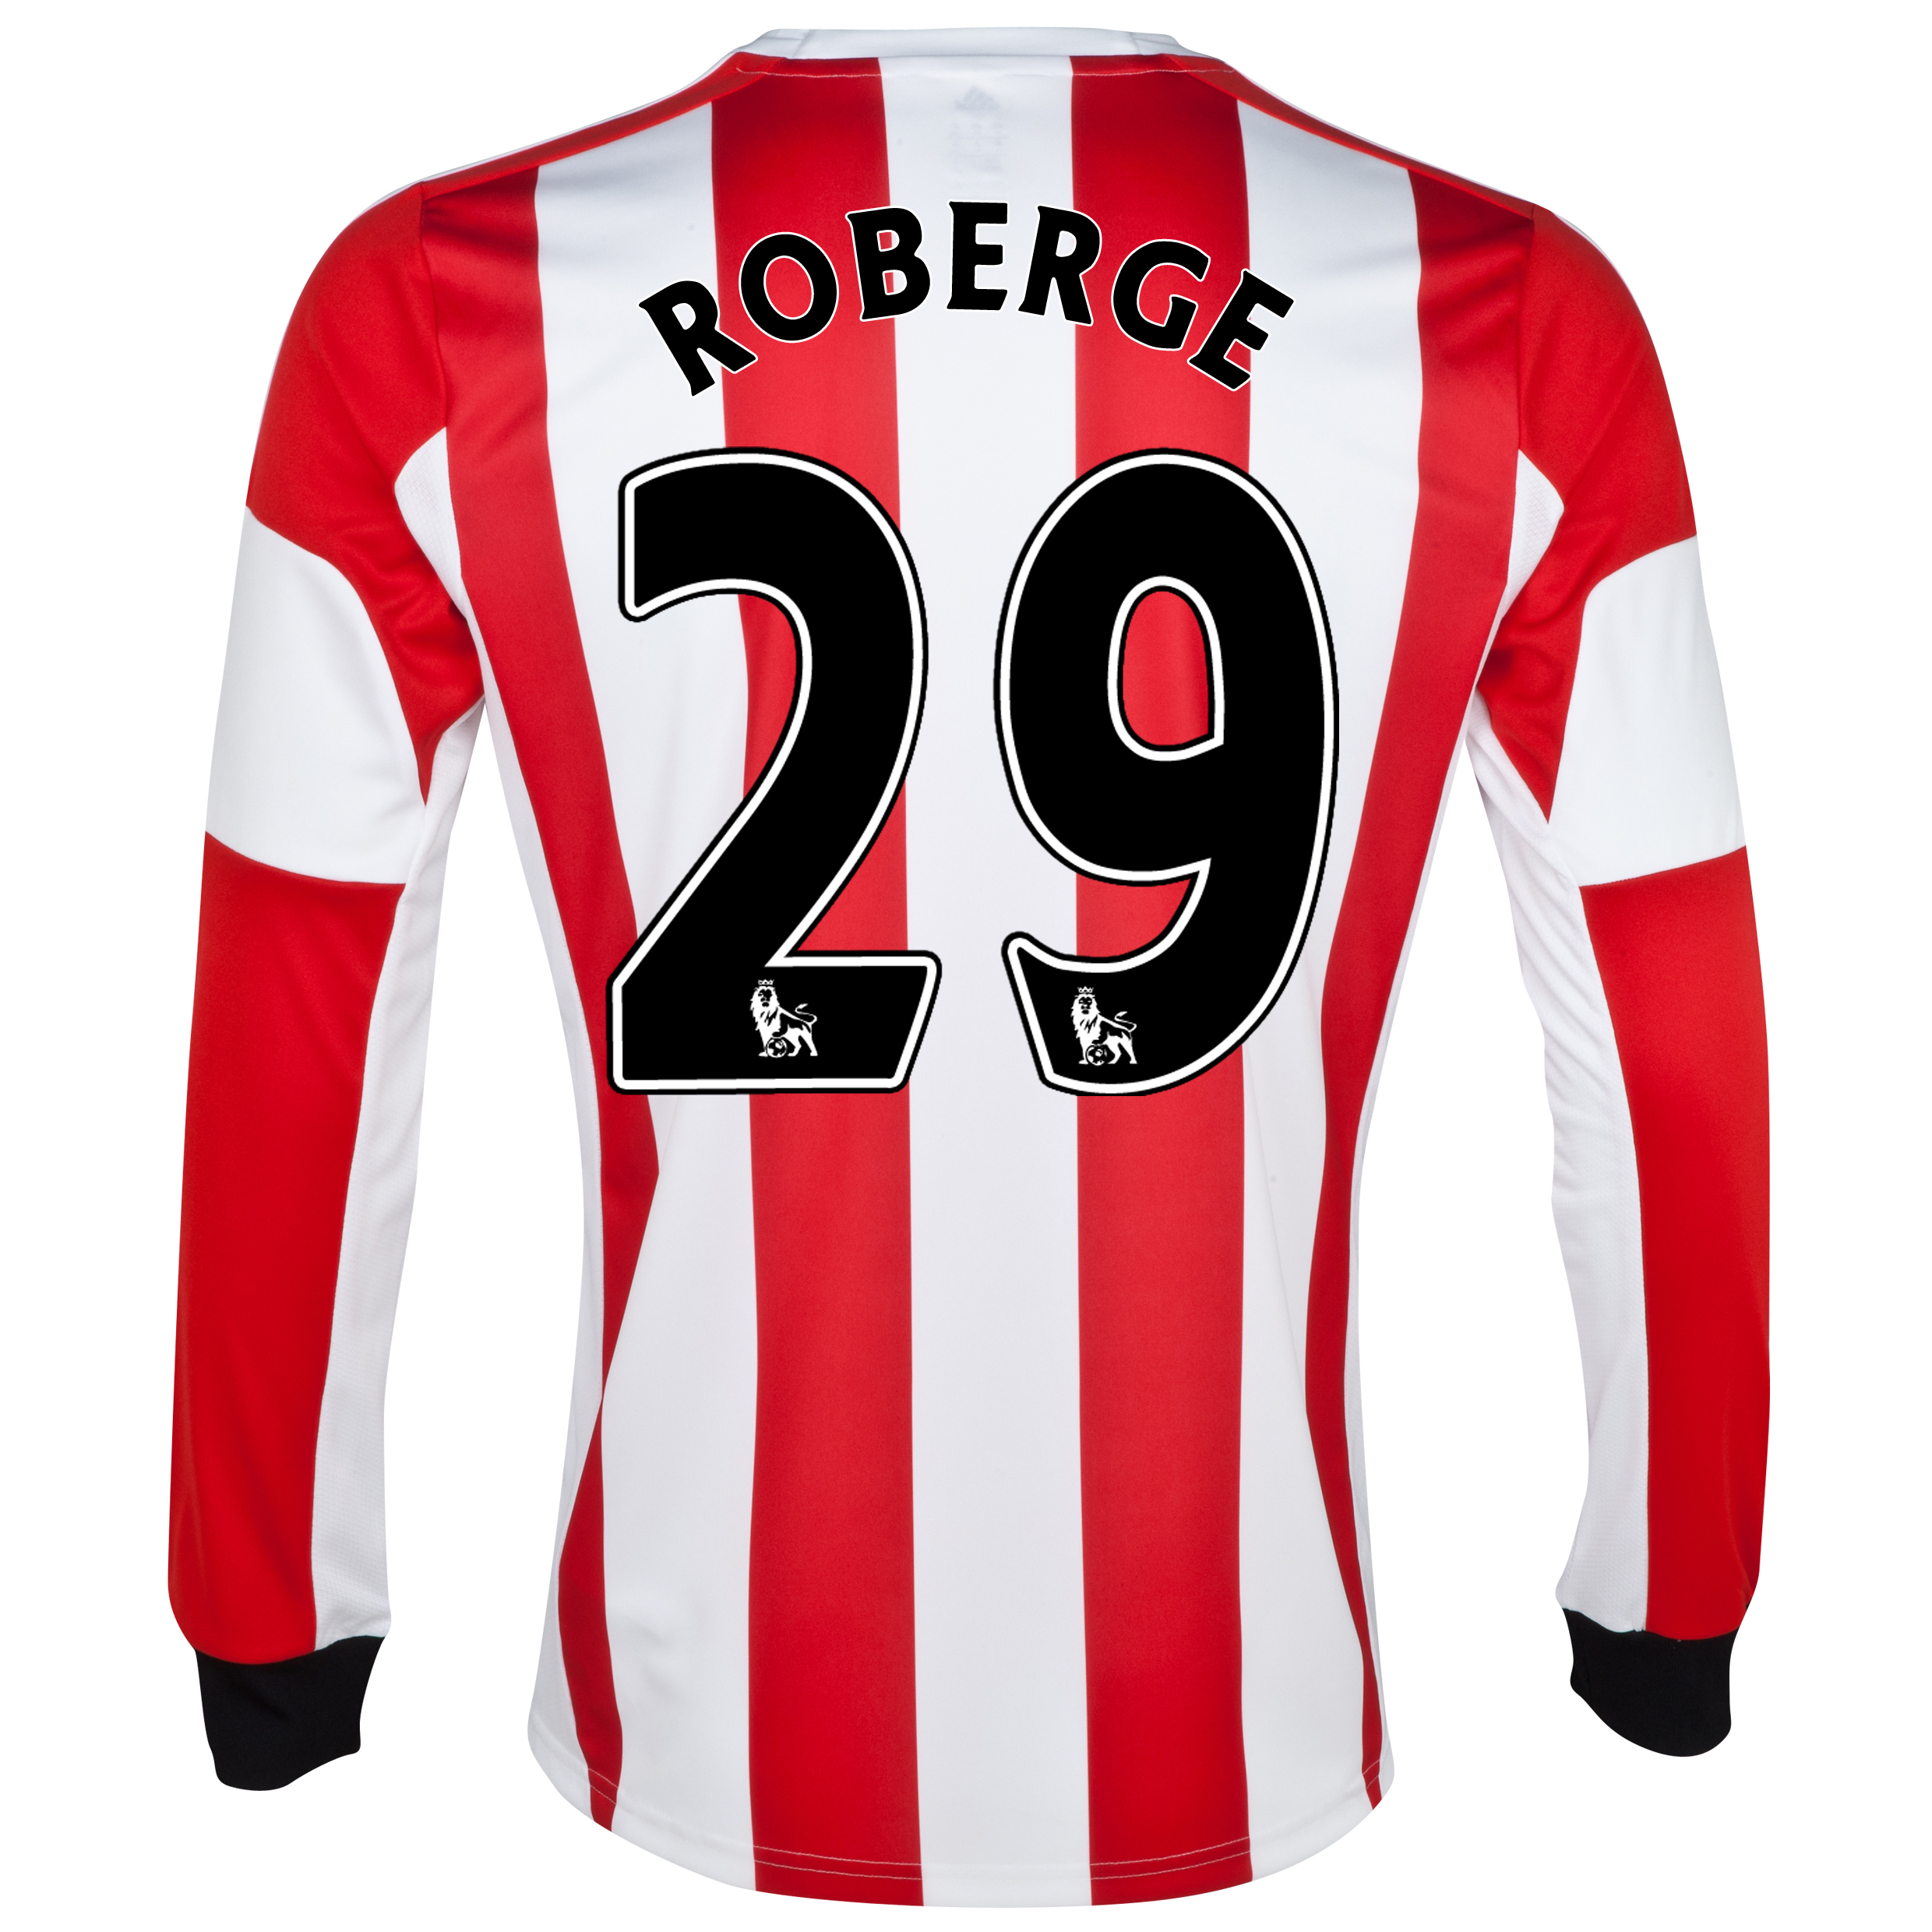 Sunderland Home Shirt 2013/14 - Long Sleeved - Junior with Roberge 29 printing